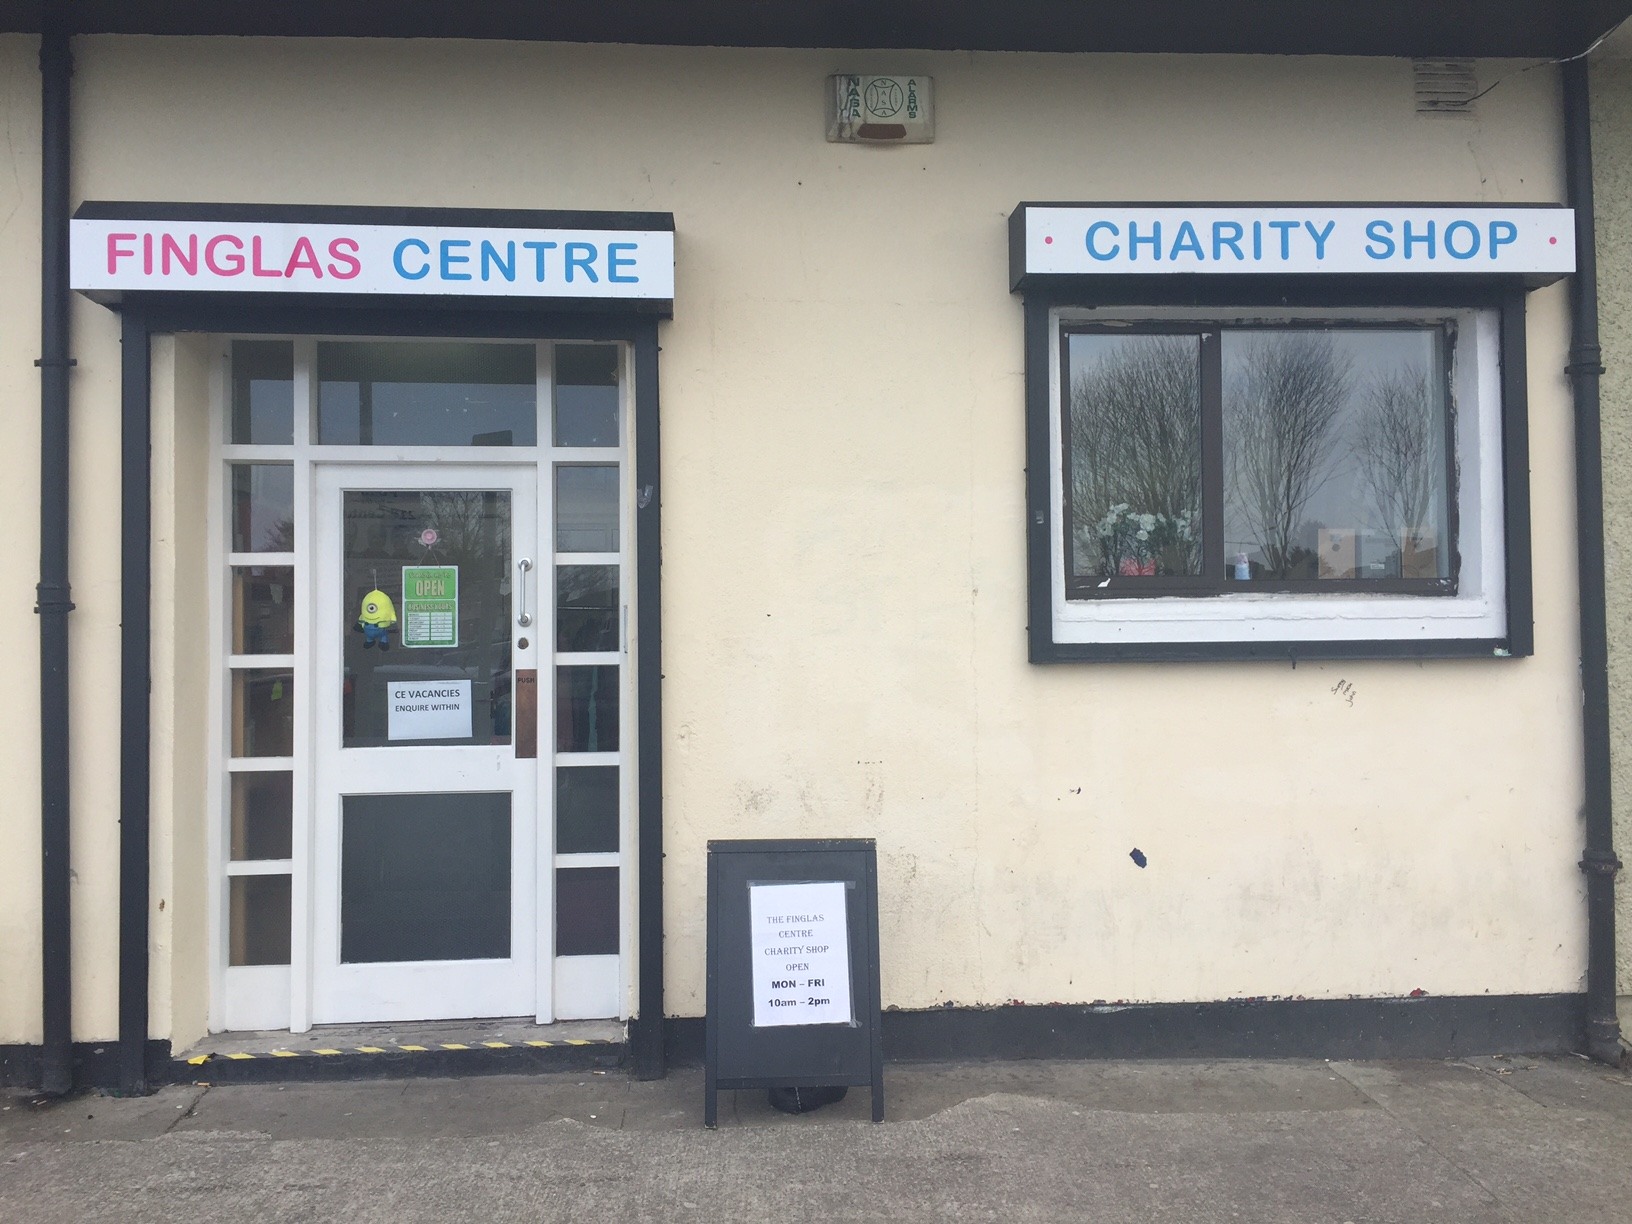 New charity shop now open in Finglas Centre